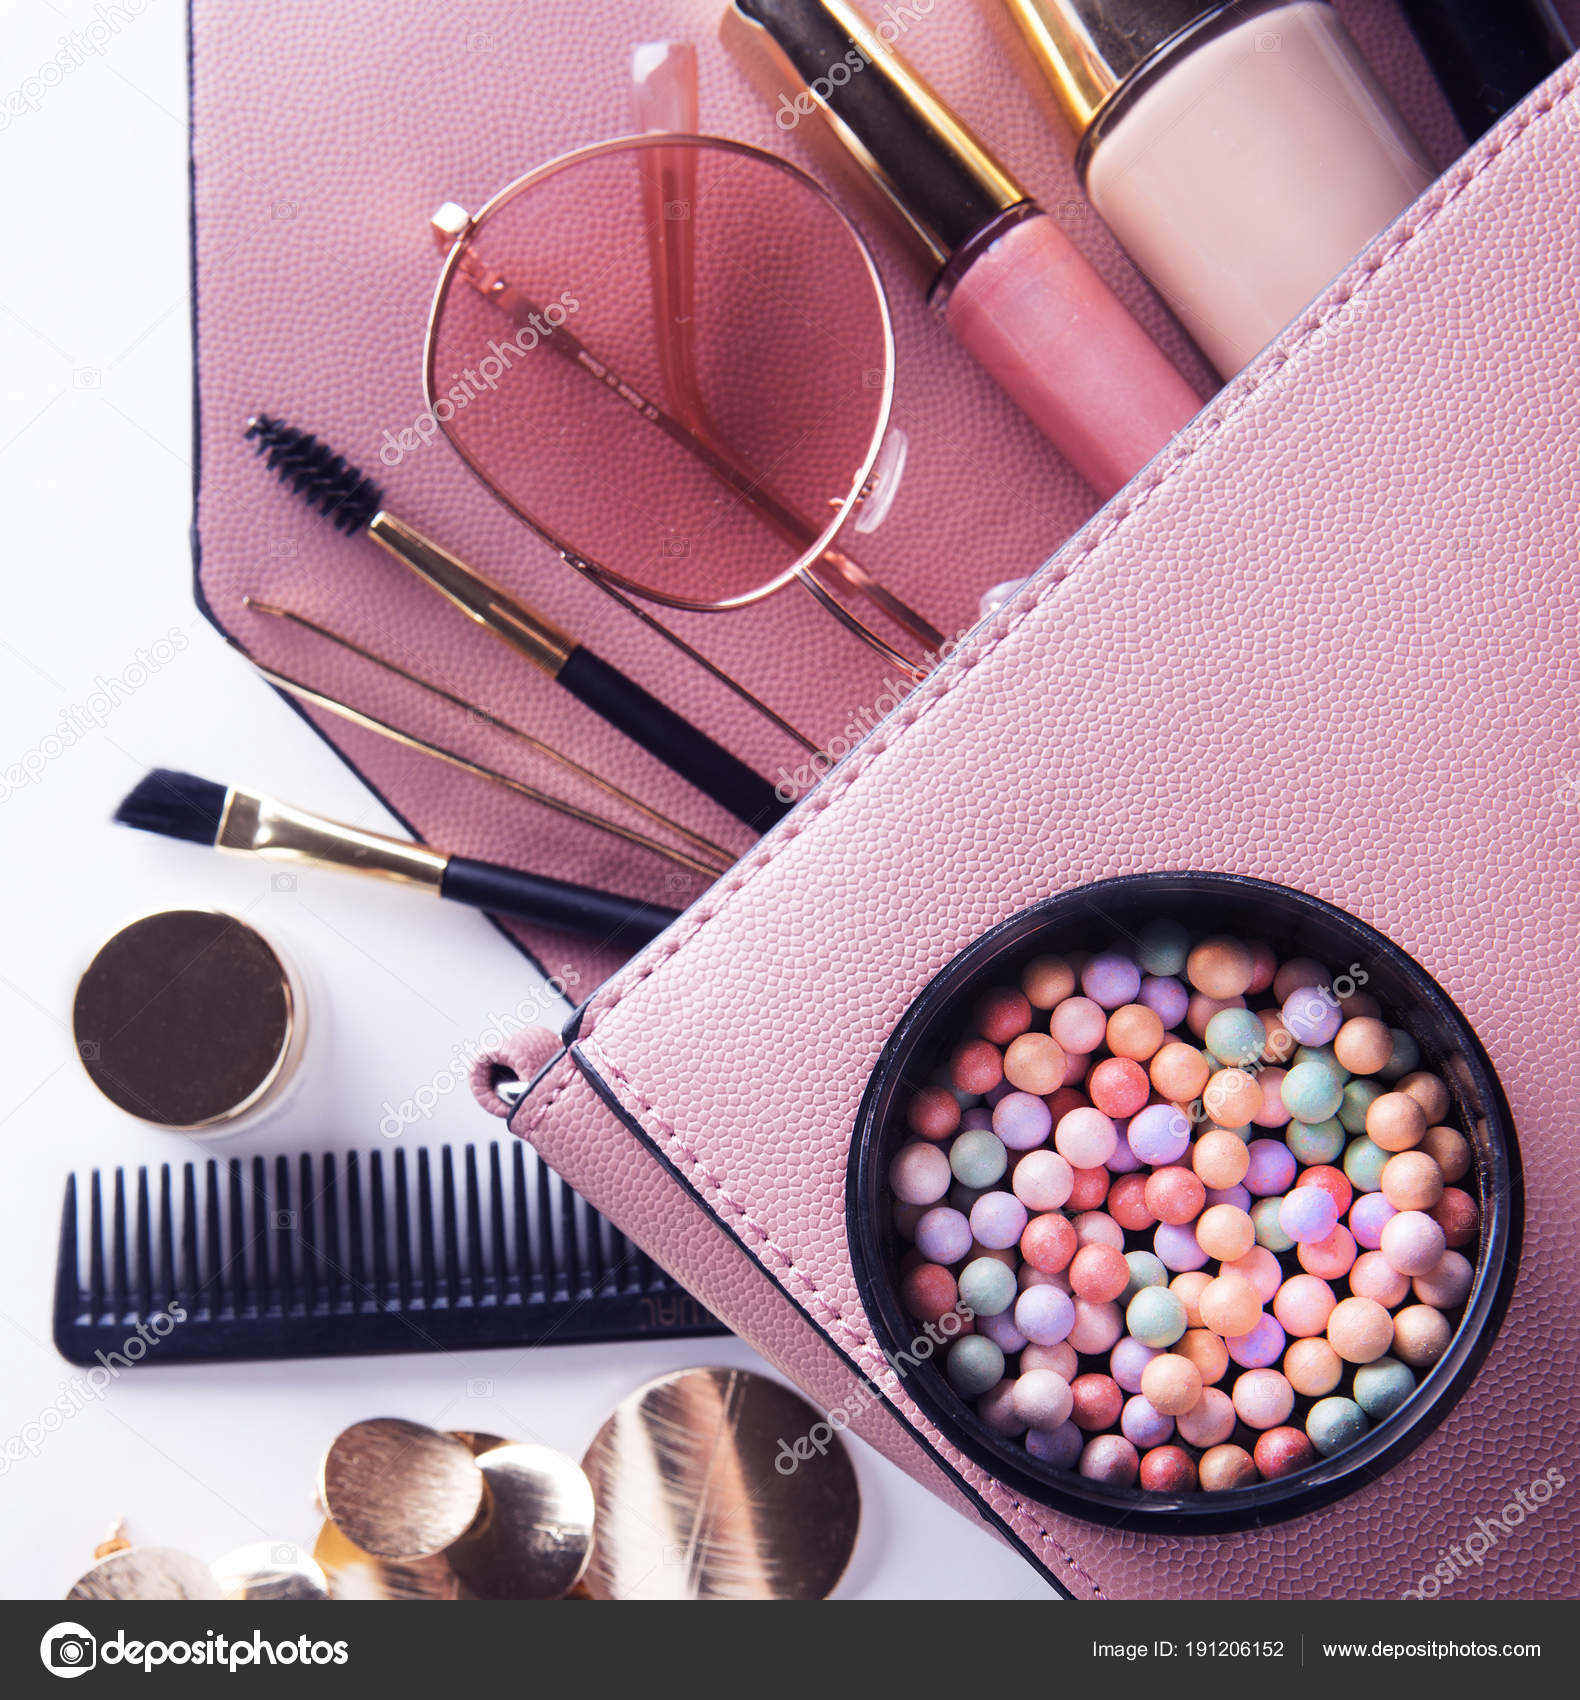 Makeup products with cosmetic bag on white background